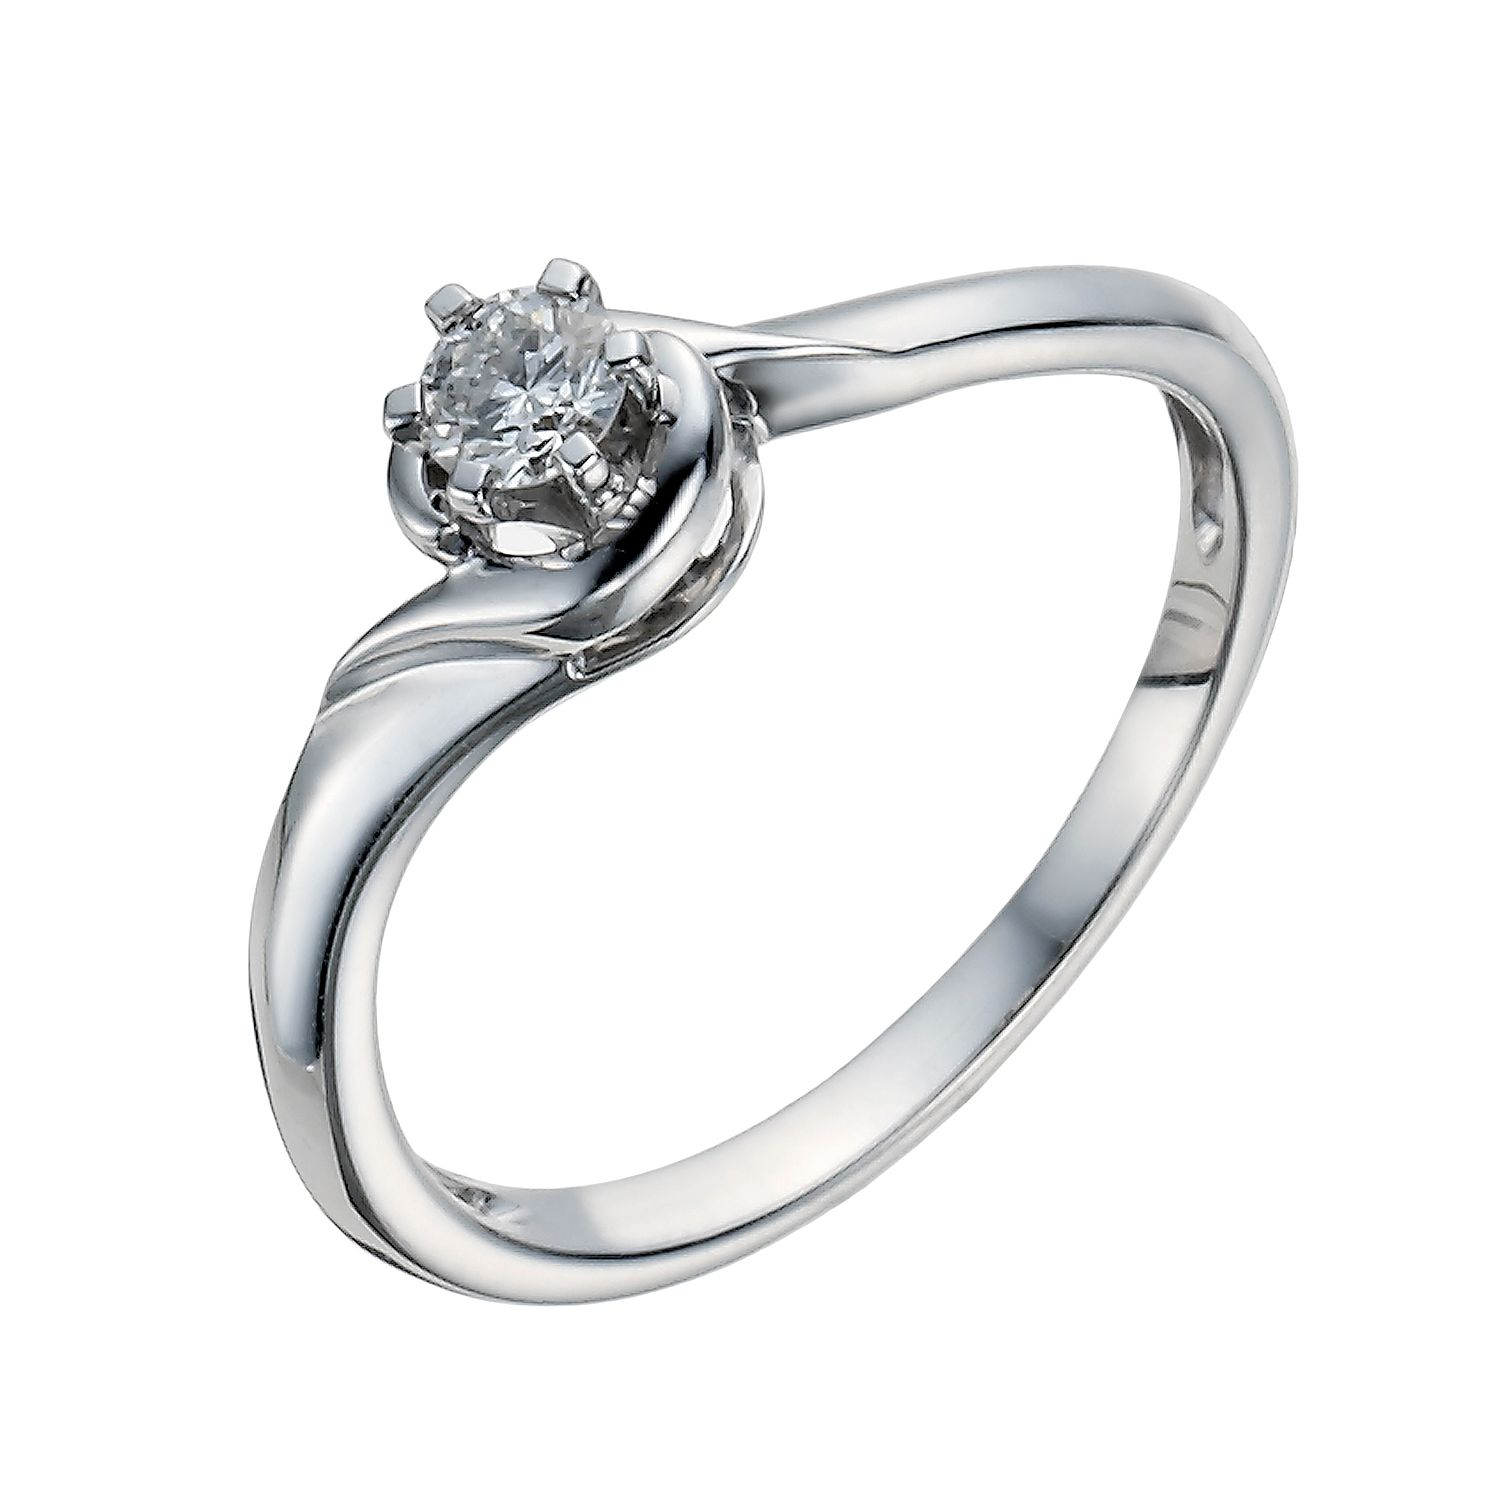 9ct White Gold 1 6 Carat Diamond Solitaire Ring